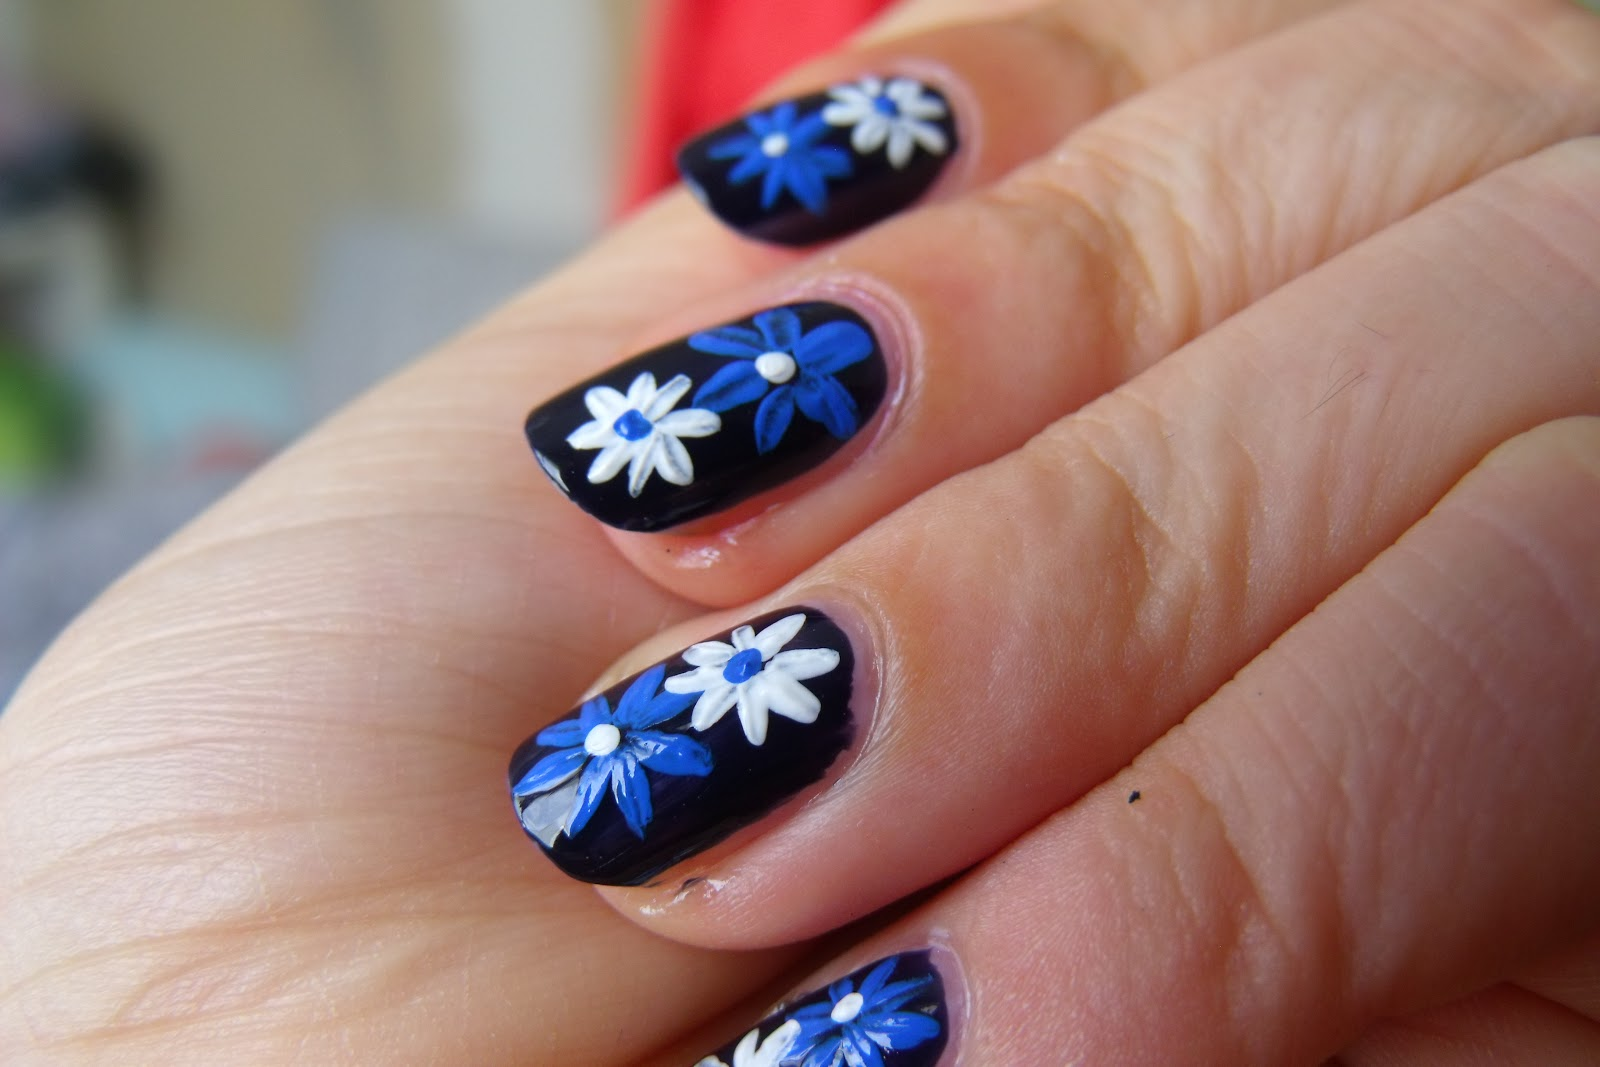 Nail Art Ideas: 15+ Cool Nail Art Designs